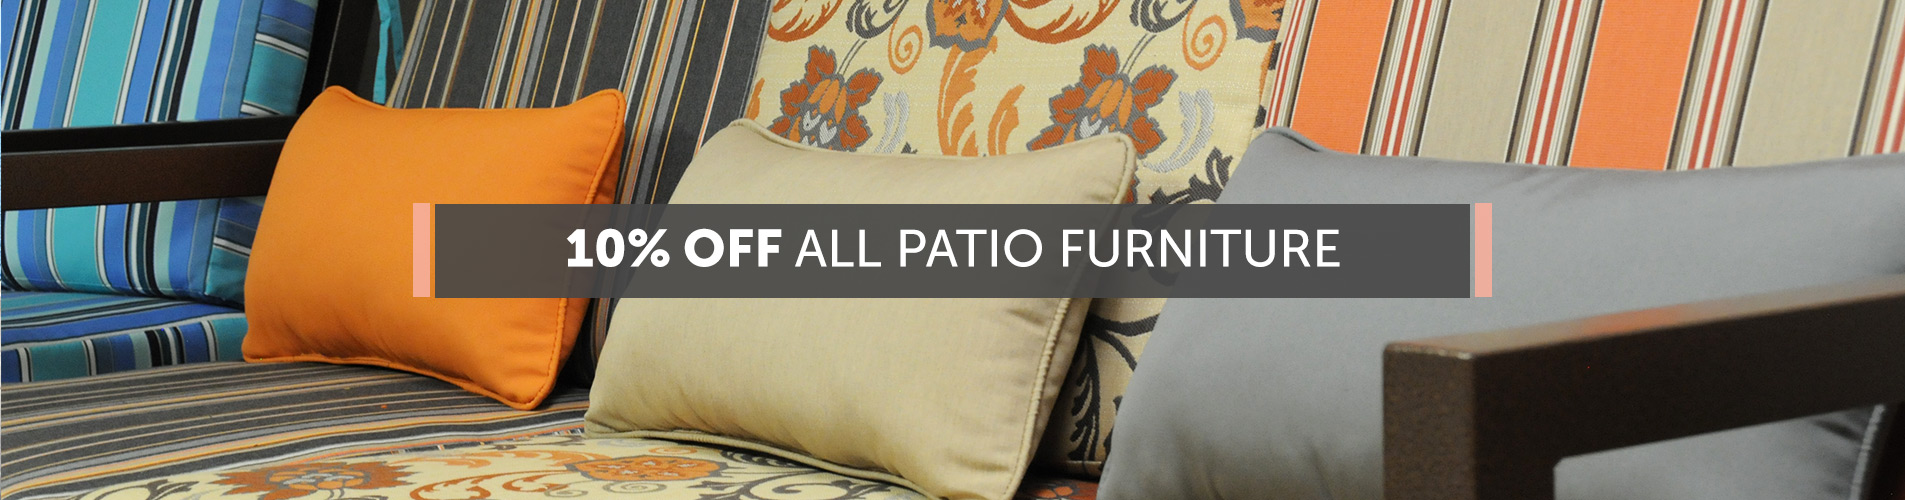 10% Off All Patio Furniture